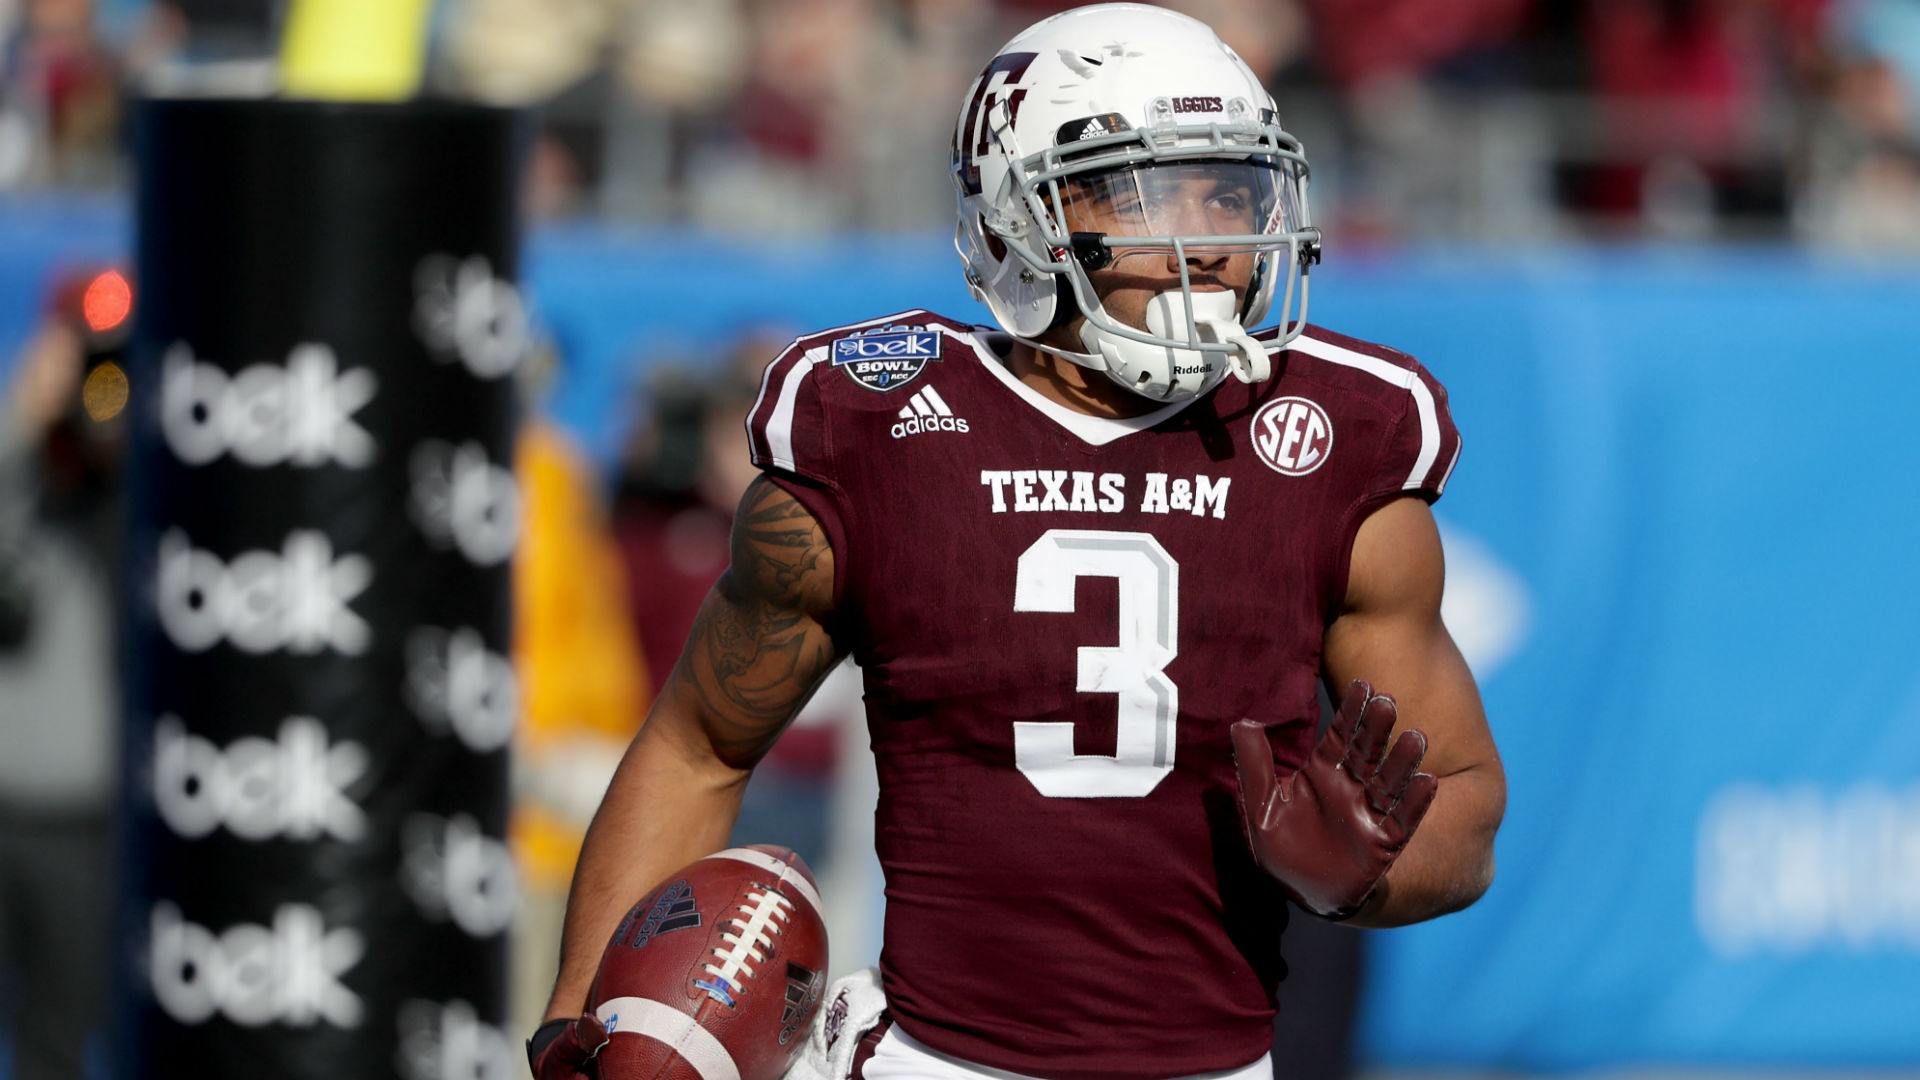 Christian Kirk arrested, charged with disorderly conduct and property damage